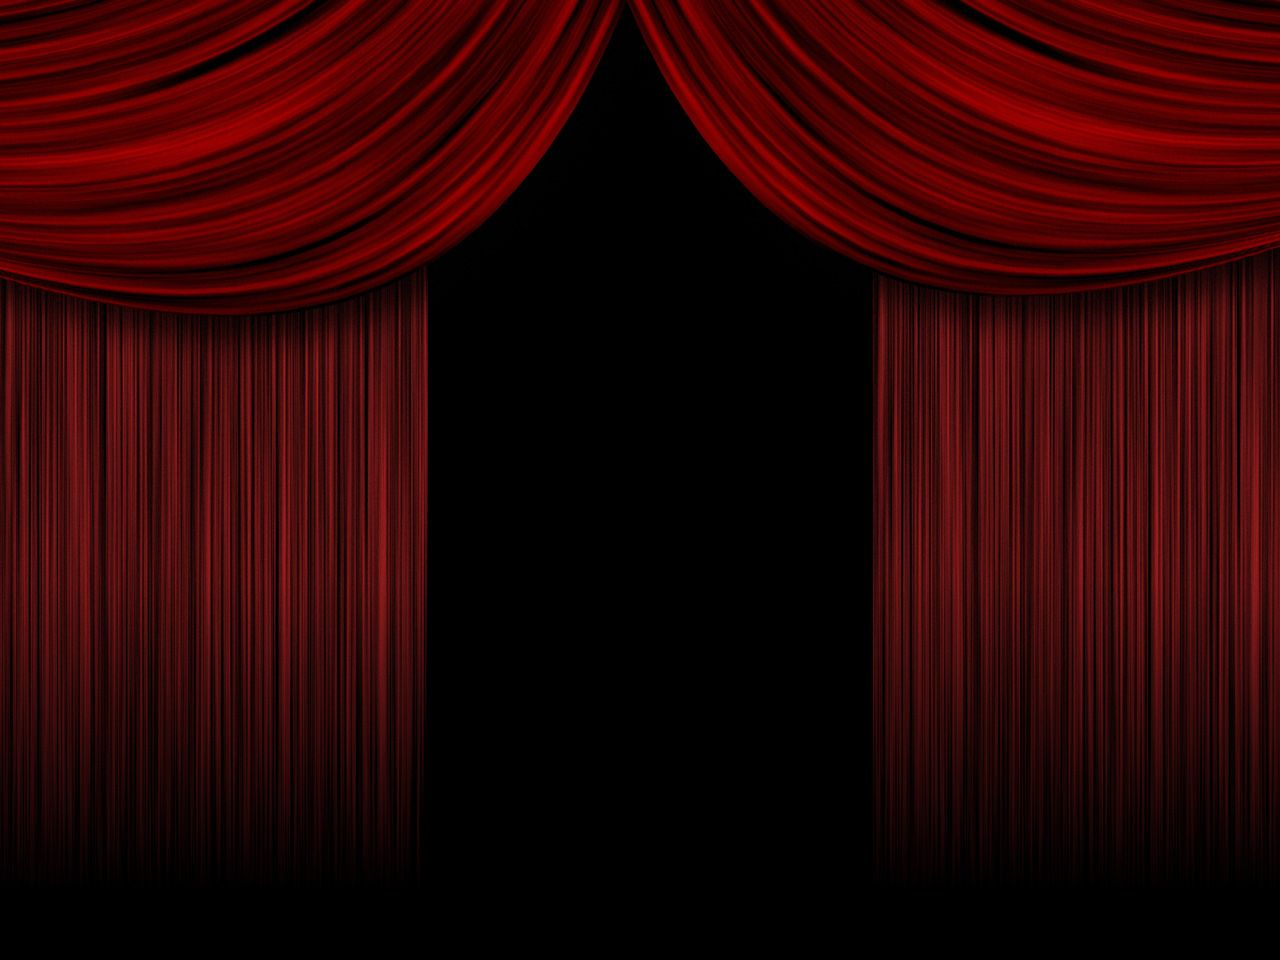 Red stage curtains open - Curtains Stage Curtainsred